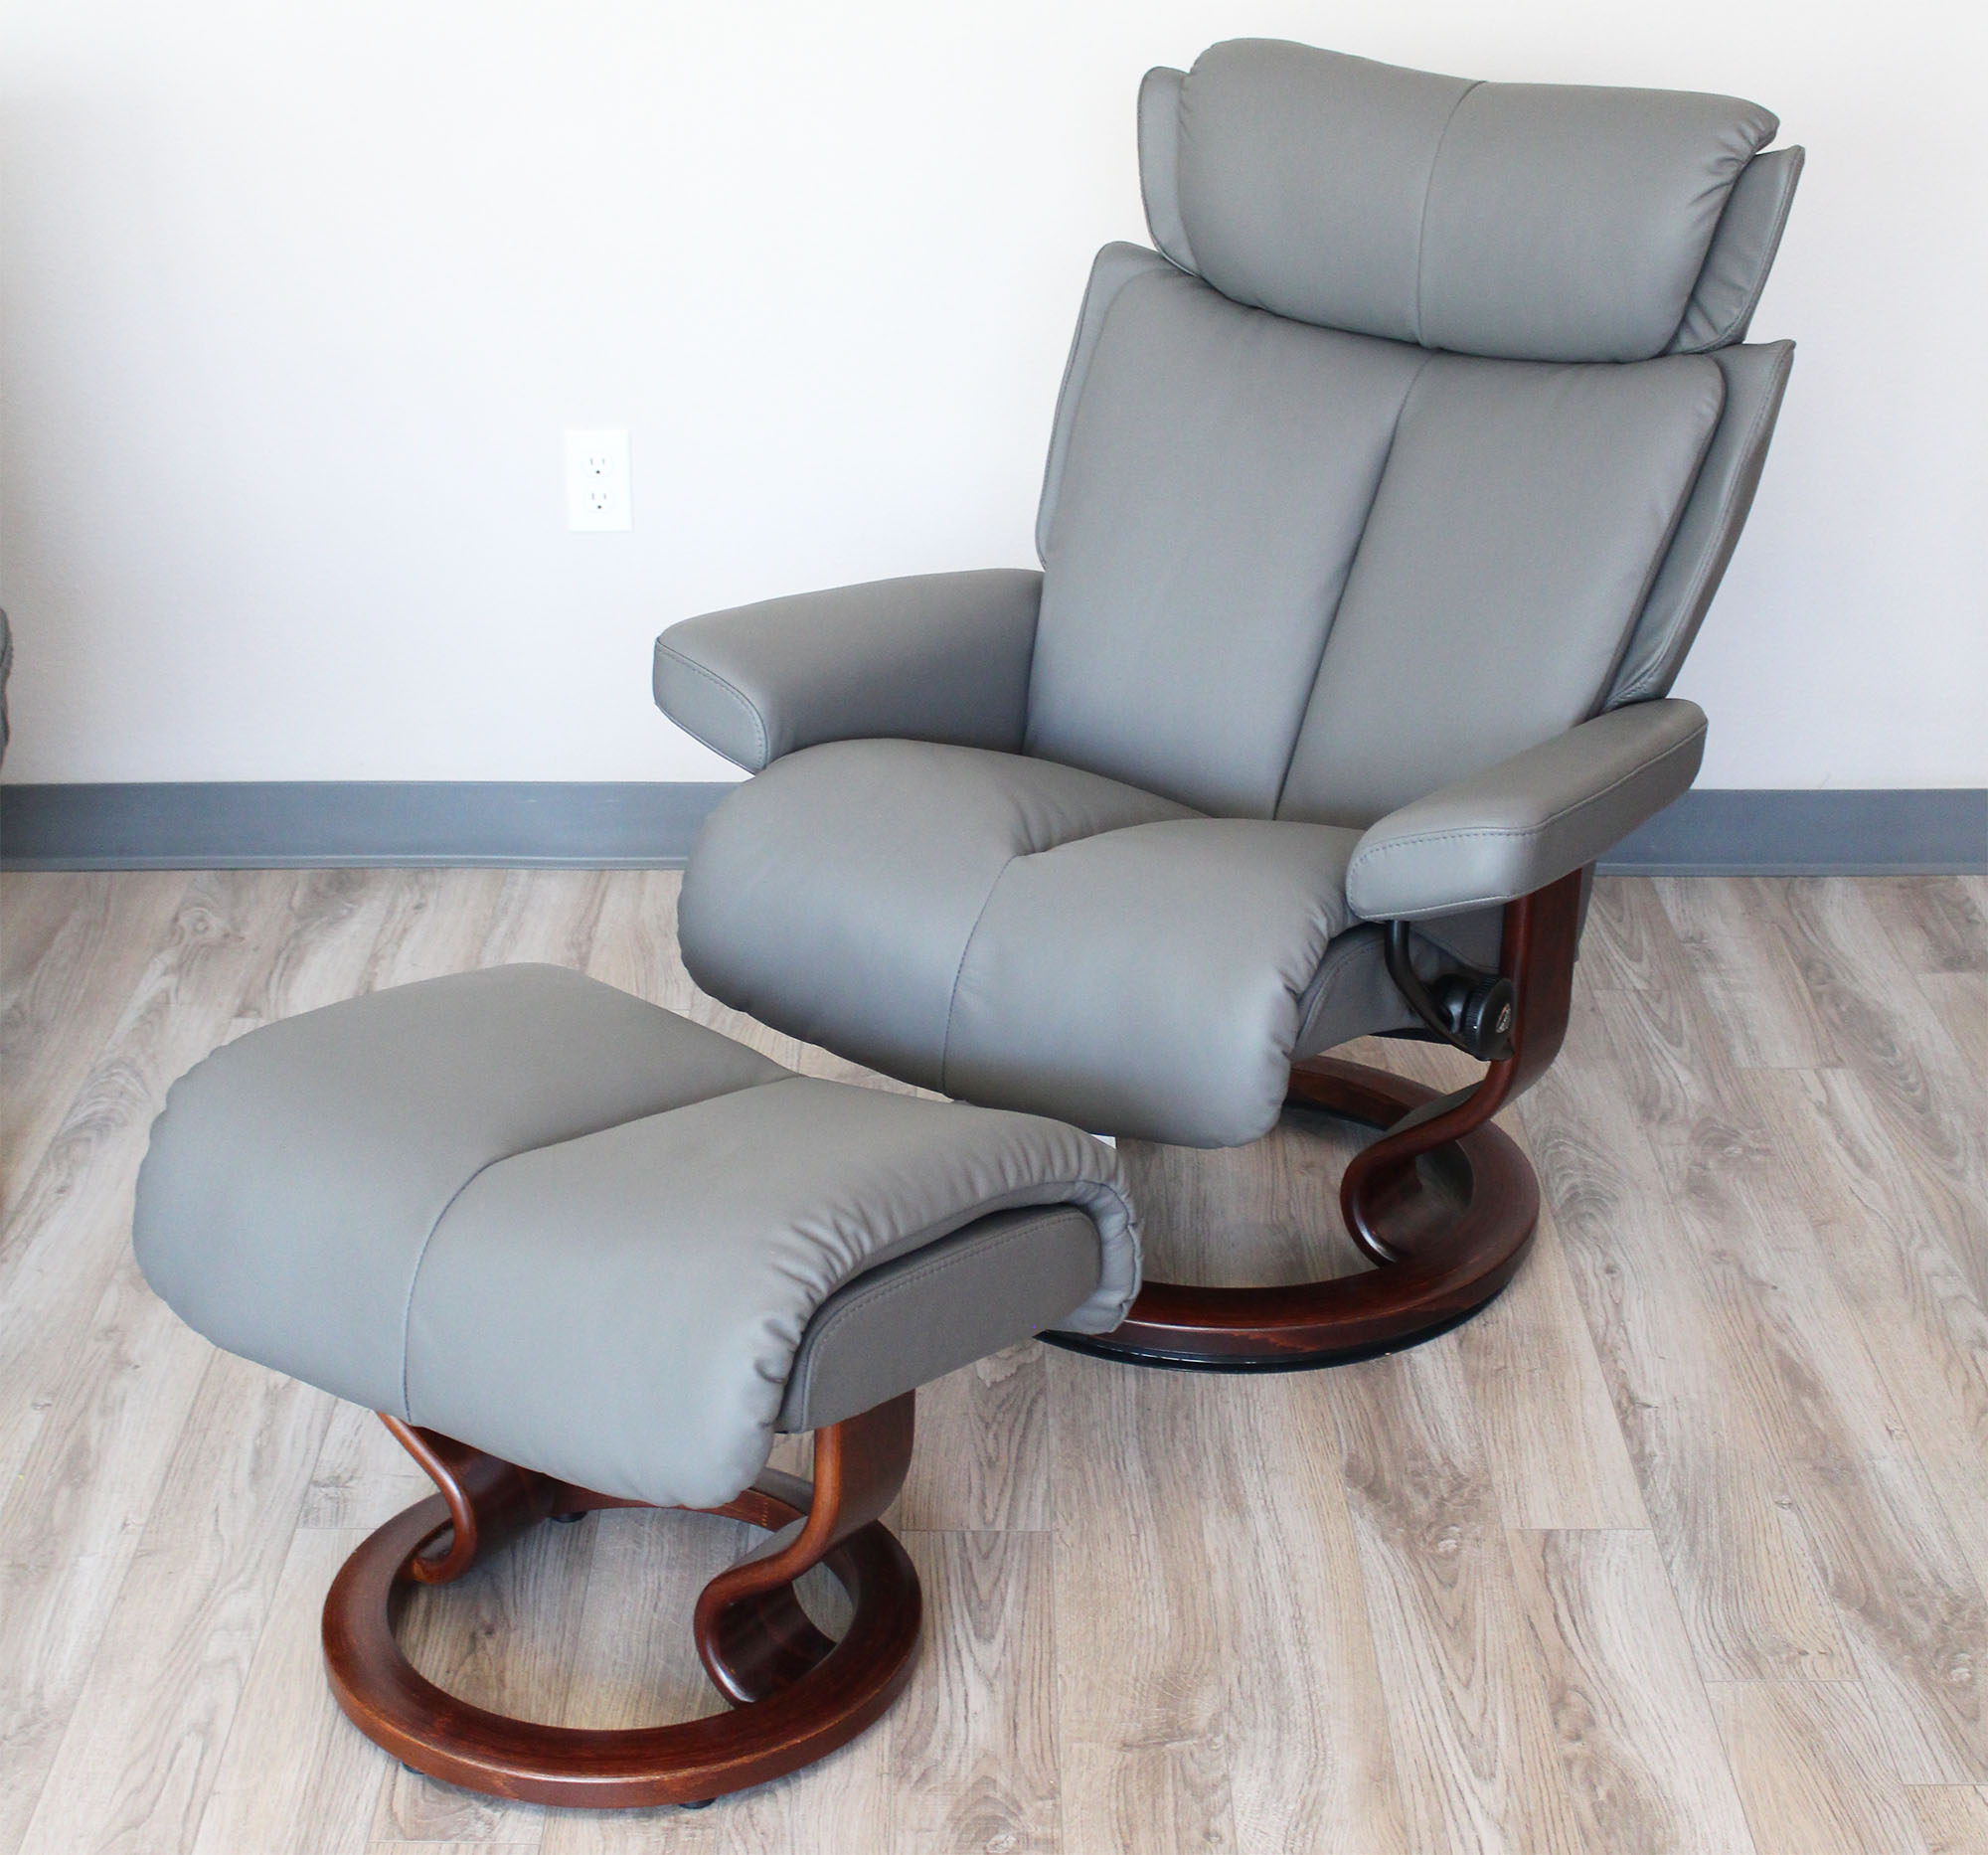 Stresless Stressless Magic Paloma Metal Grey Leather Recliner Chair And Ottoman By Ekornes